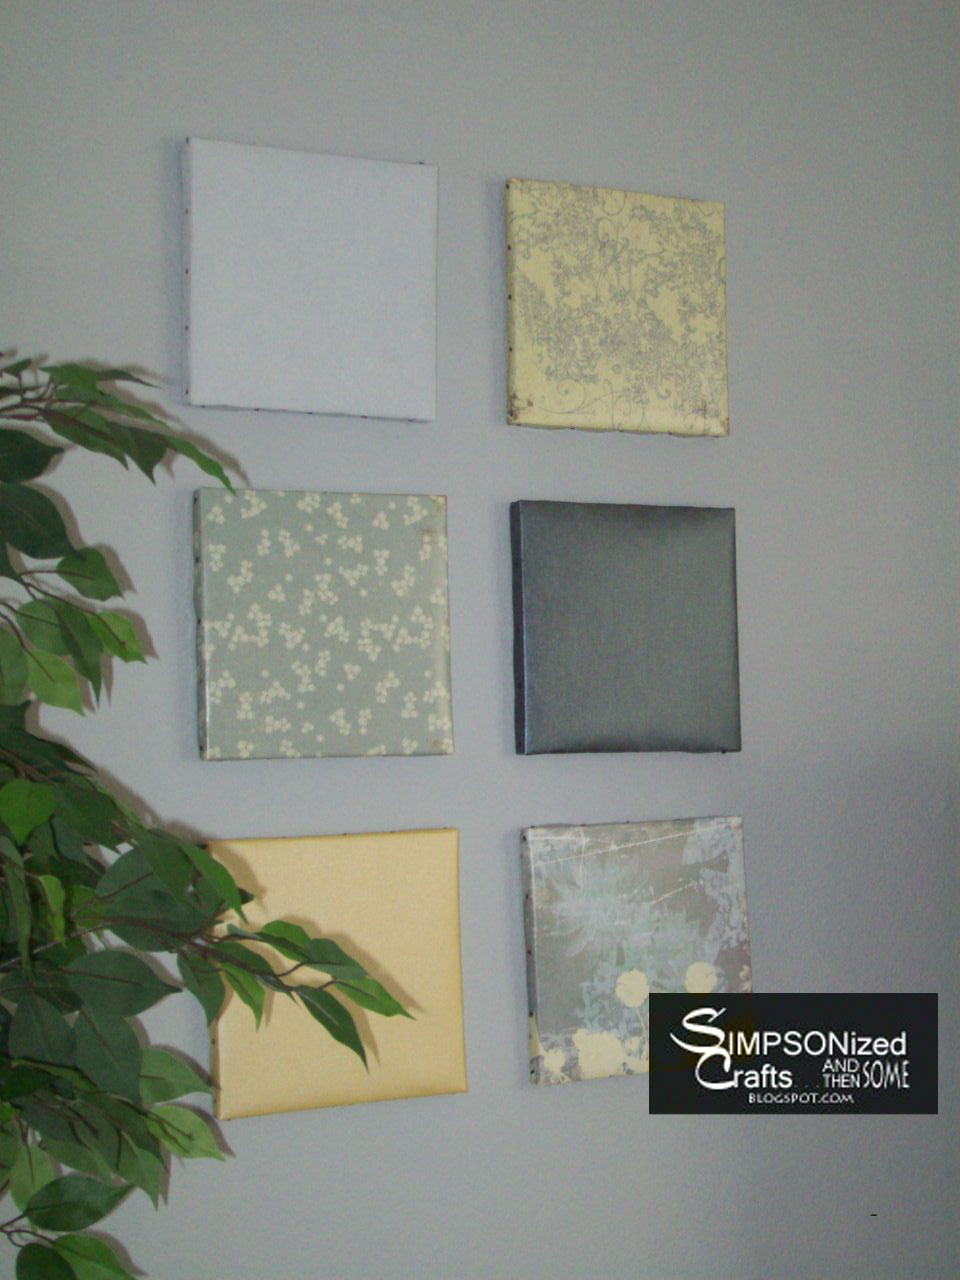 Wall decor made from scrapbooking paper : Simpsonized crafts the things you can do with scrapbook